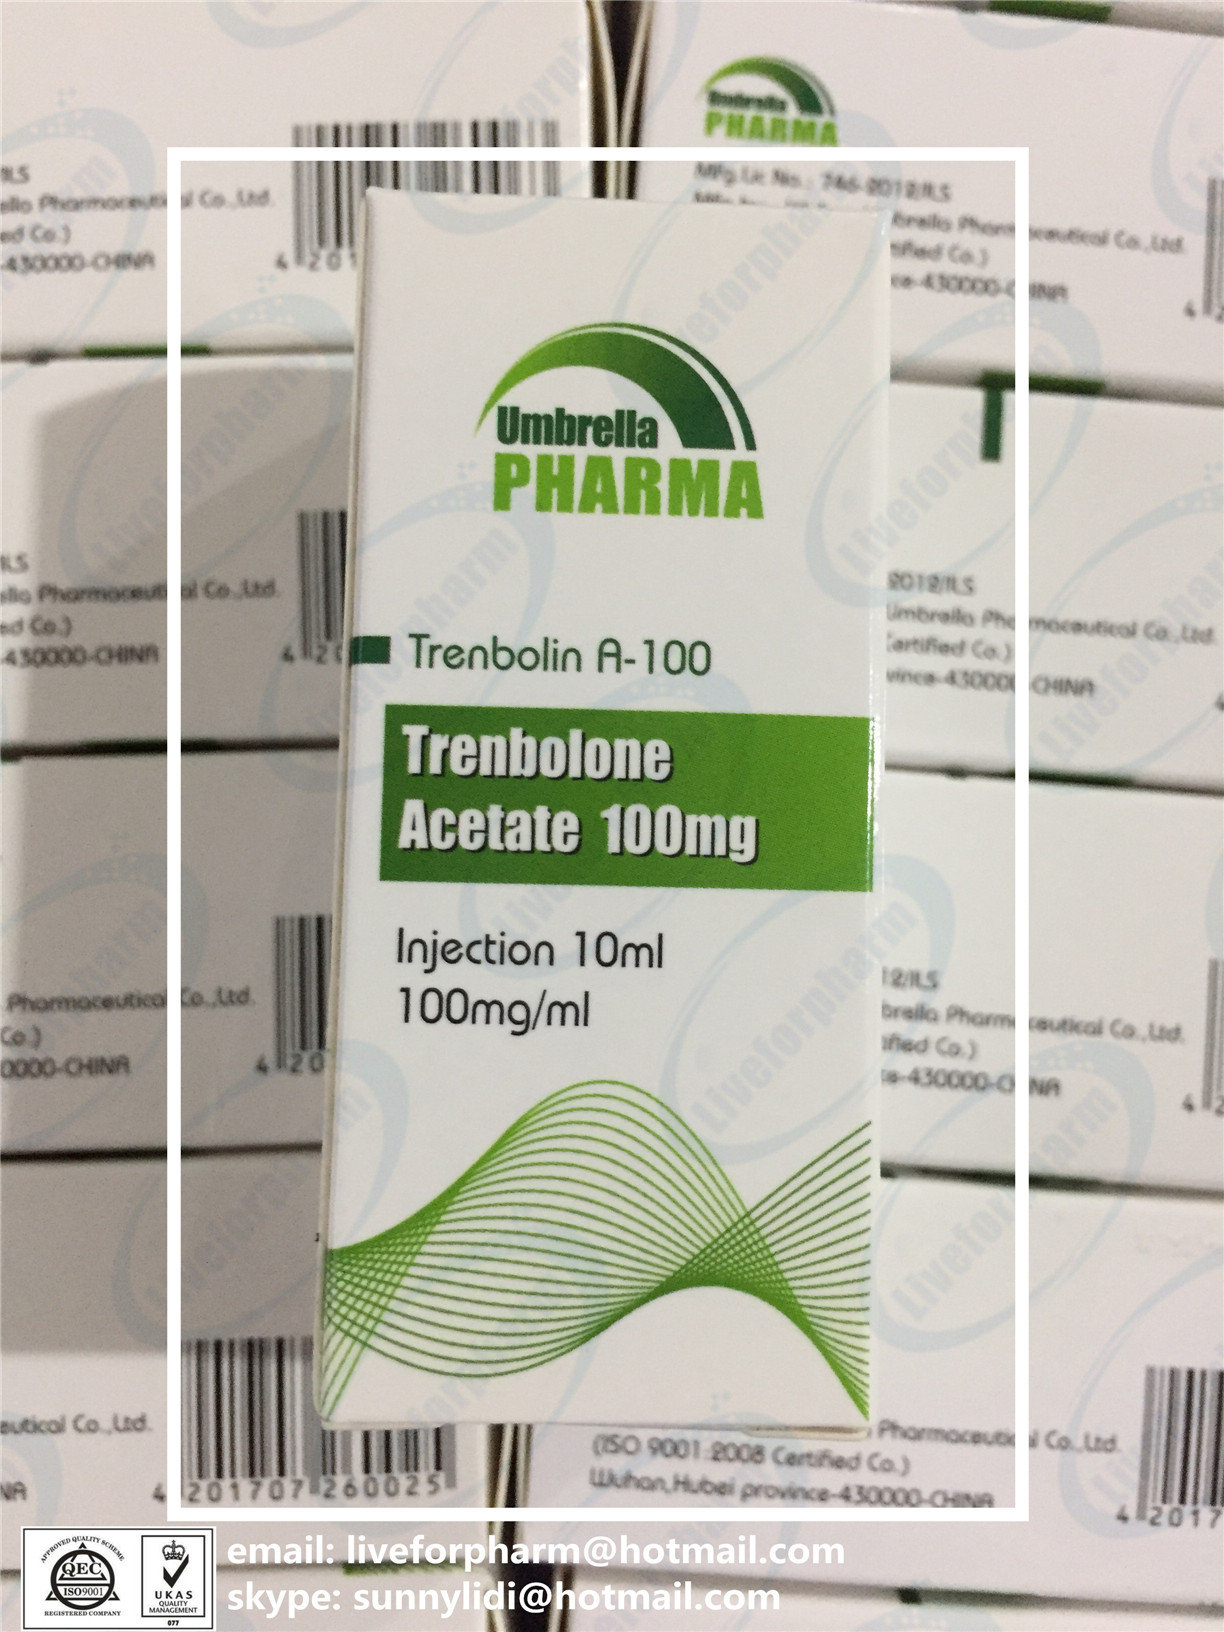 Injectable Anabolic Steroid Finished Liquid Trenbolone Acetate 100mg/ml 98.8% above purity